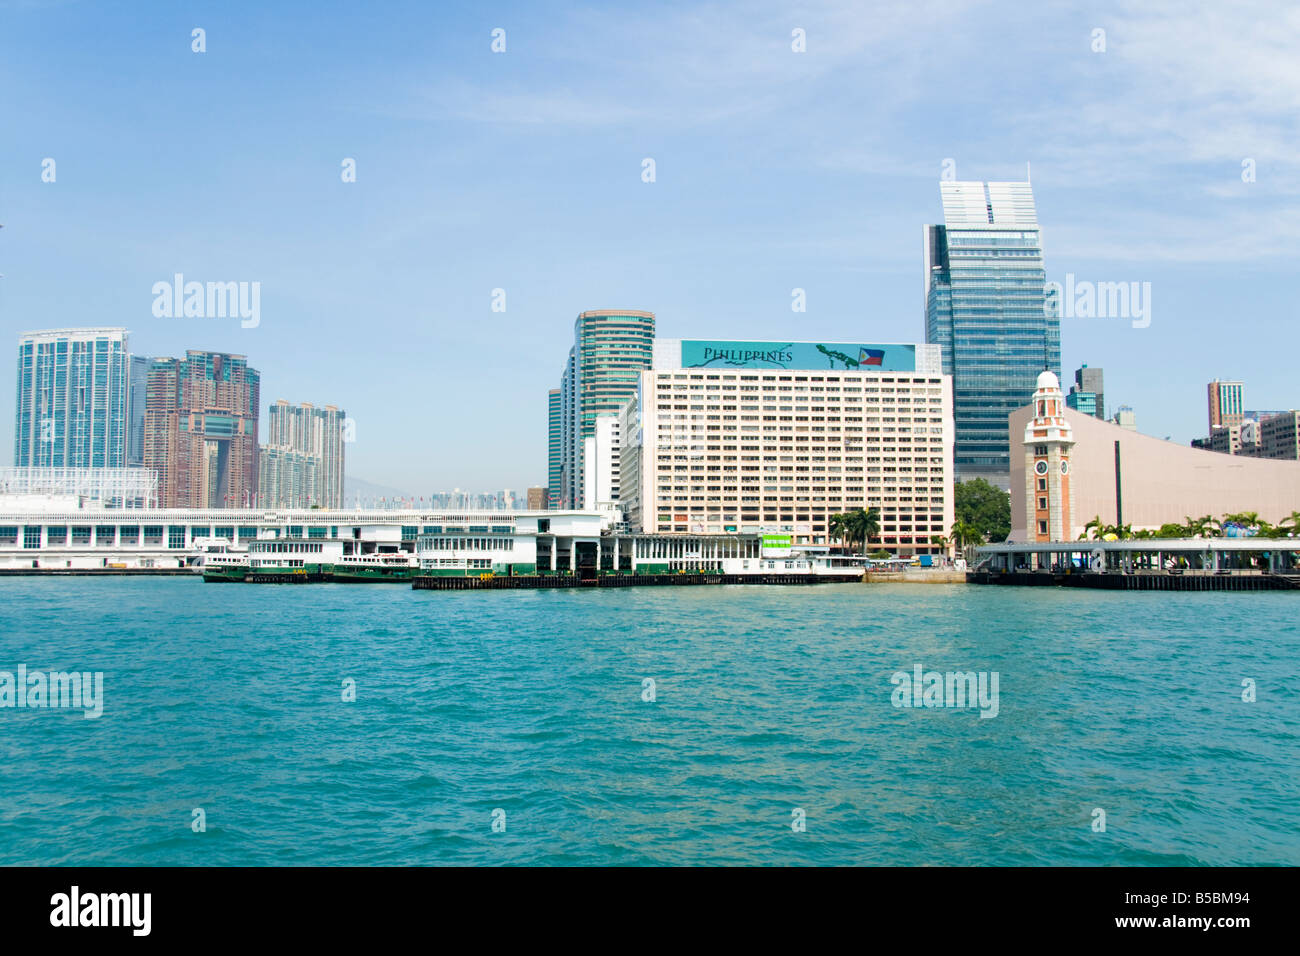 Star Ferry terminal with the clock tower , Victoria harbour, Kowloon, Hong Kong - Stock Image